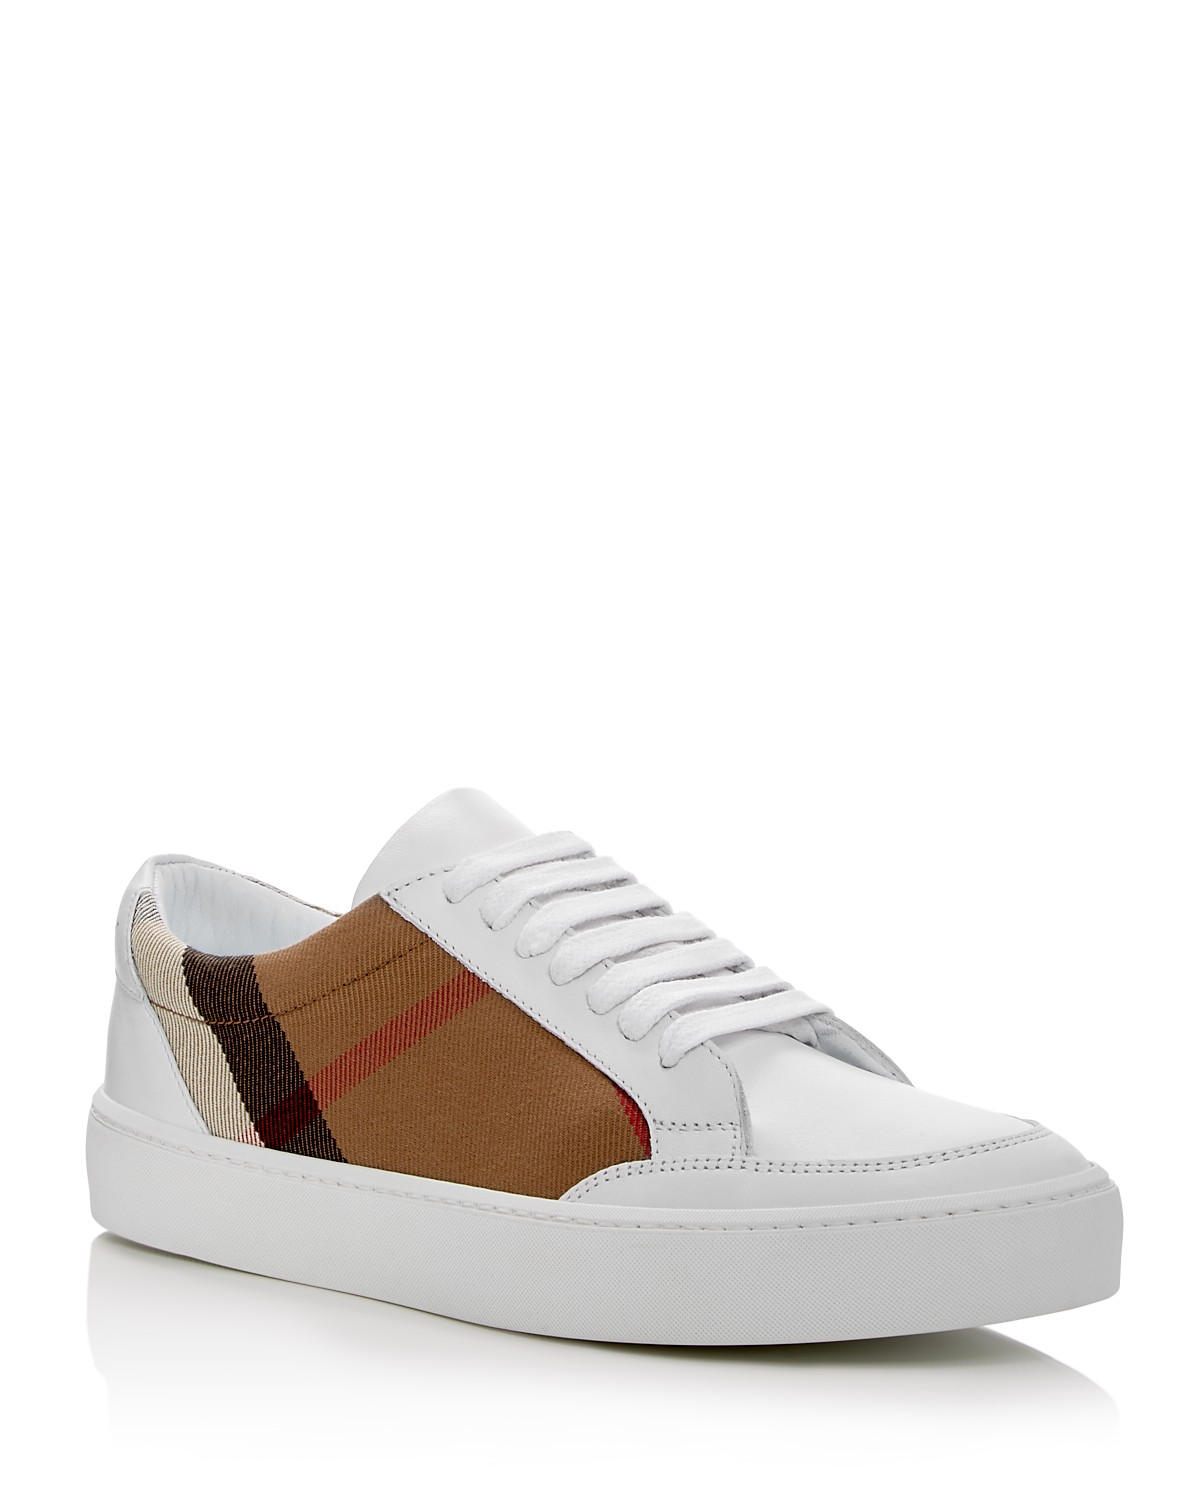 Burberry Salmond Lace Up Sneakers 34nC9y2